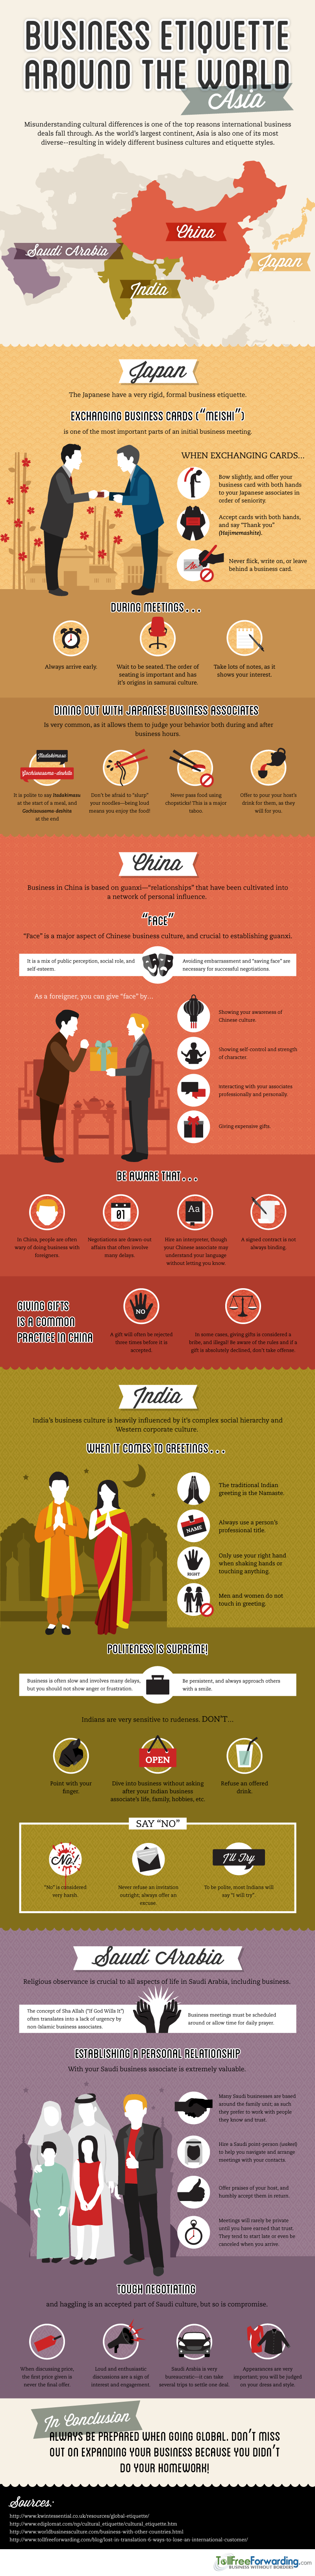 Infographic: Business Etiquette Around the World (Asia)